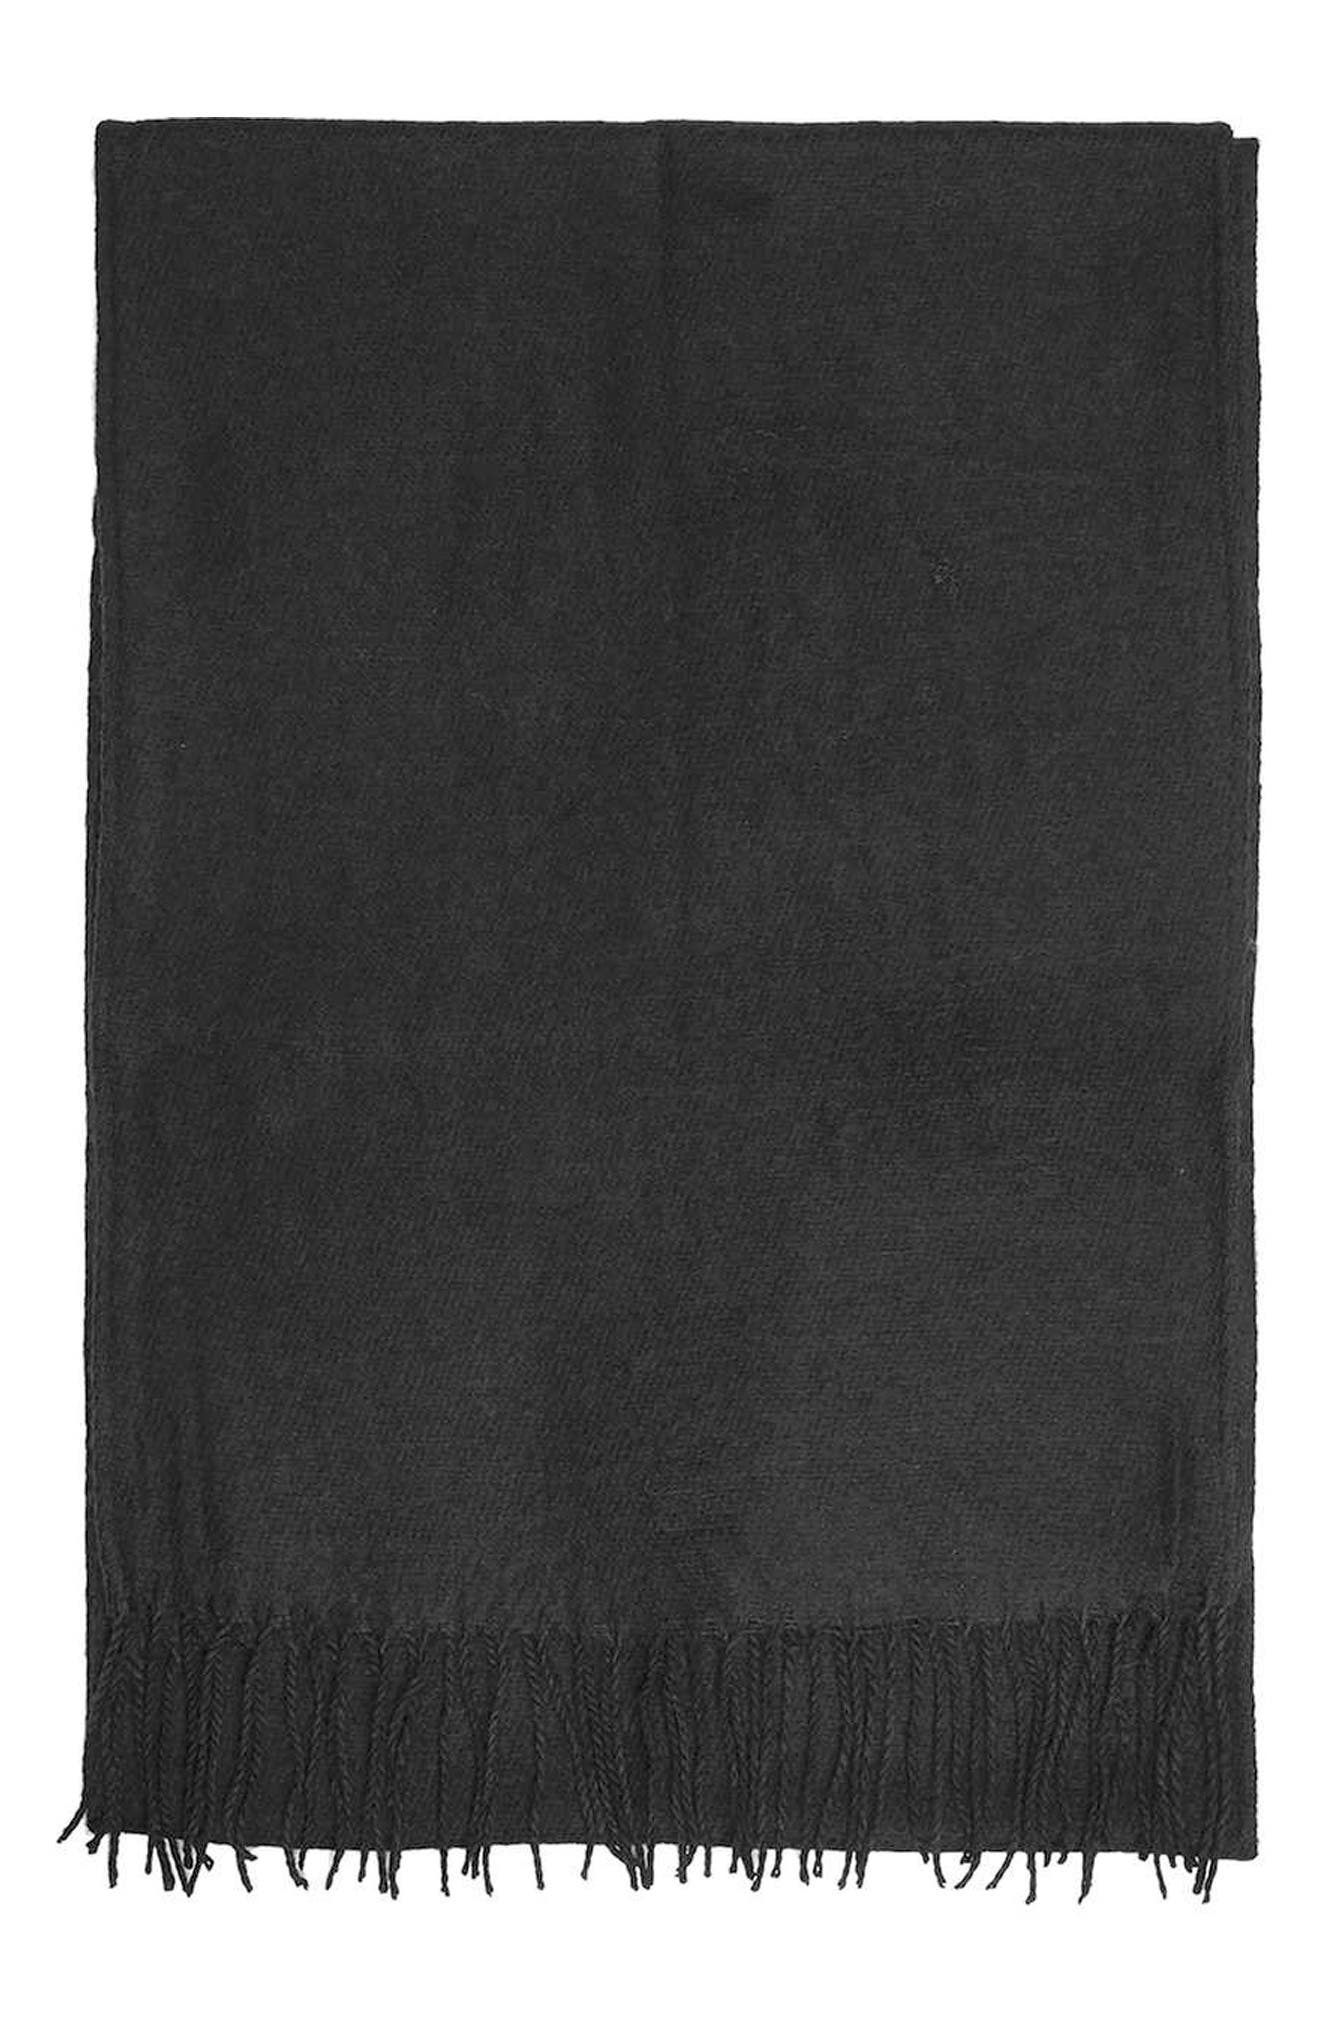 Fringed Scarf,                             Alternate thumbnail 3, color,                             001